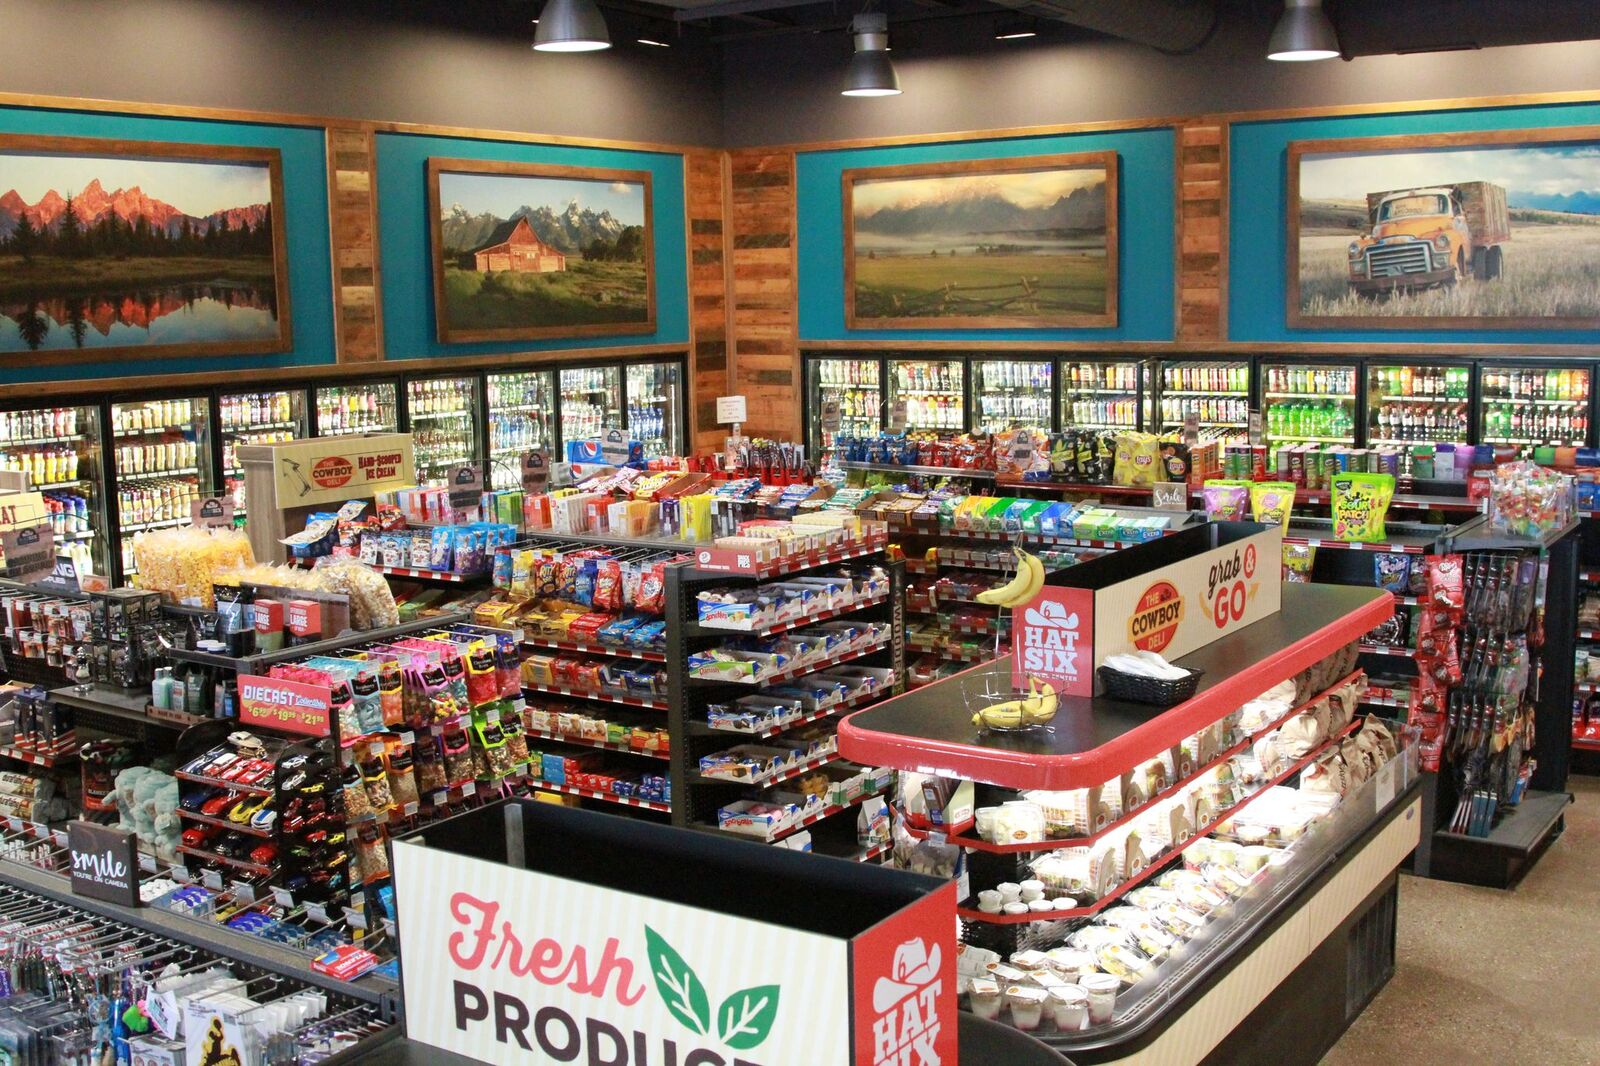 Come see what Wyoming has to offer at Hat Six Travel Center